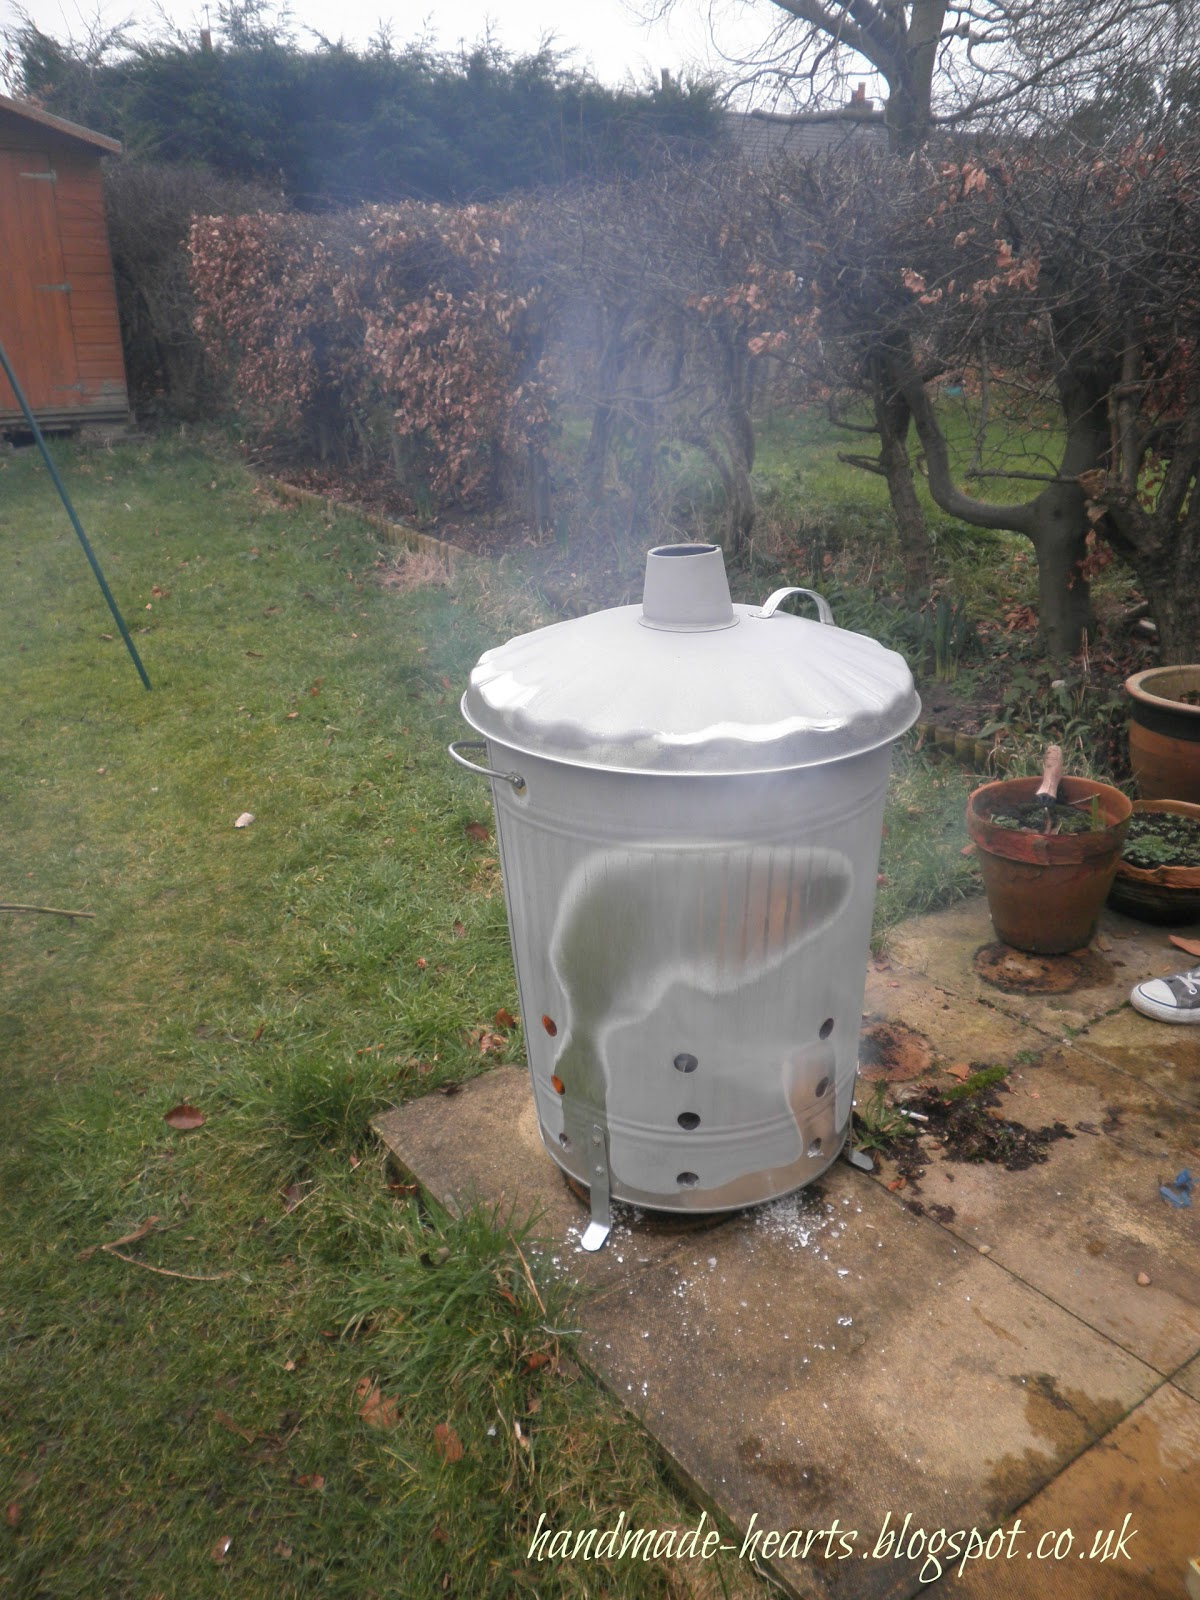 Garden incinerator 2015raparperisydan for Household incinerator design